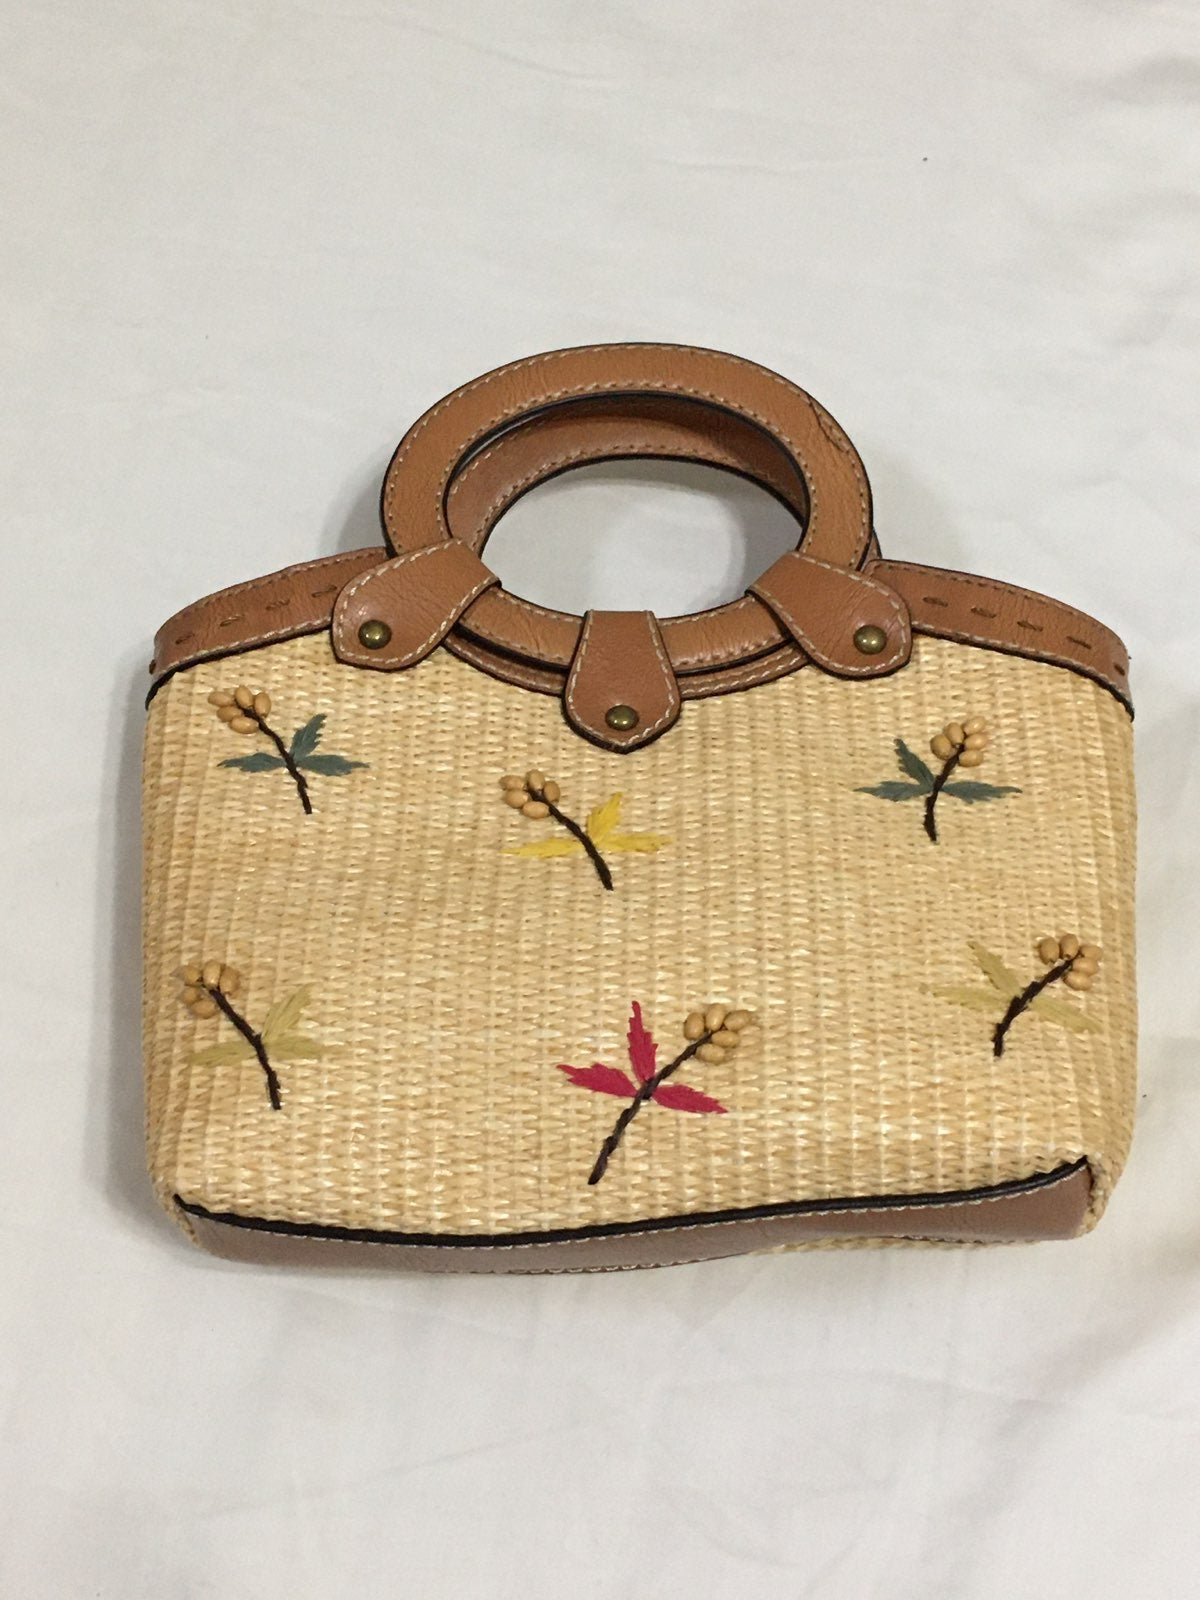 Embroidered Woven Straw Handbag